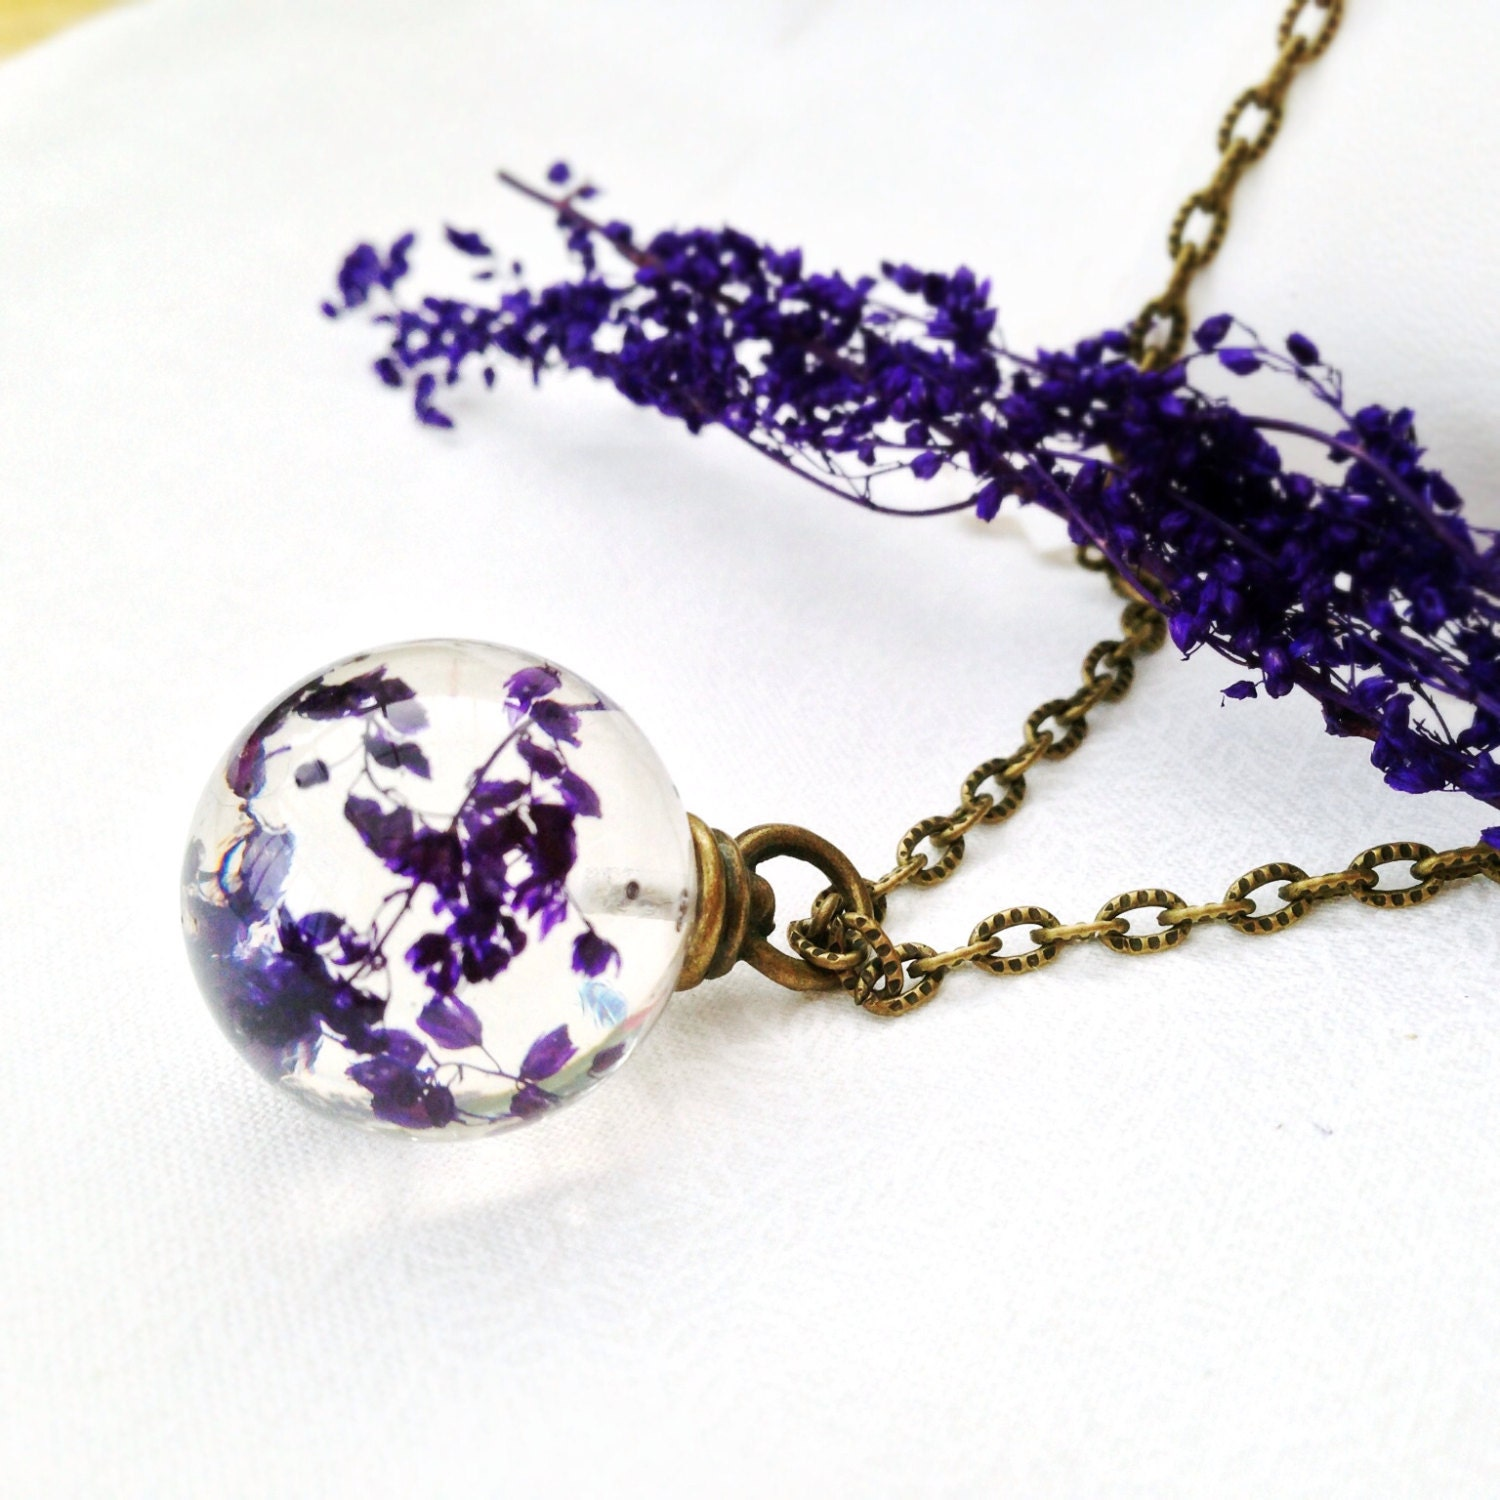 flower necklace nature jewelry purple necklace resin orb